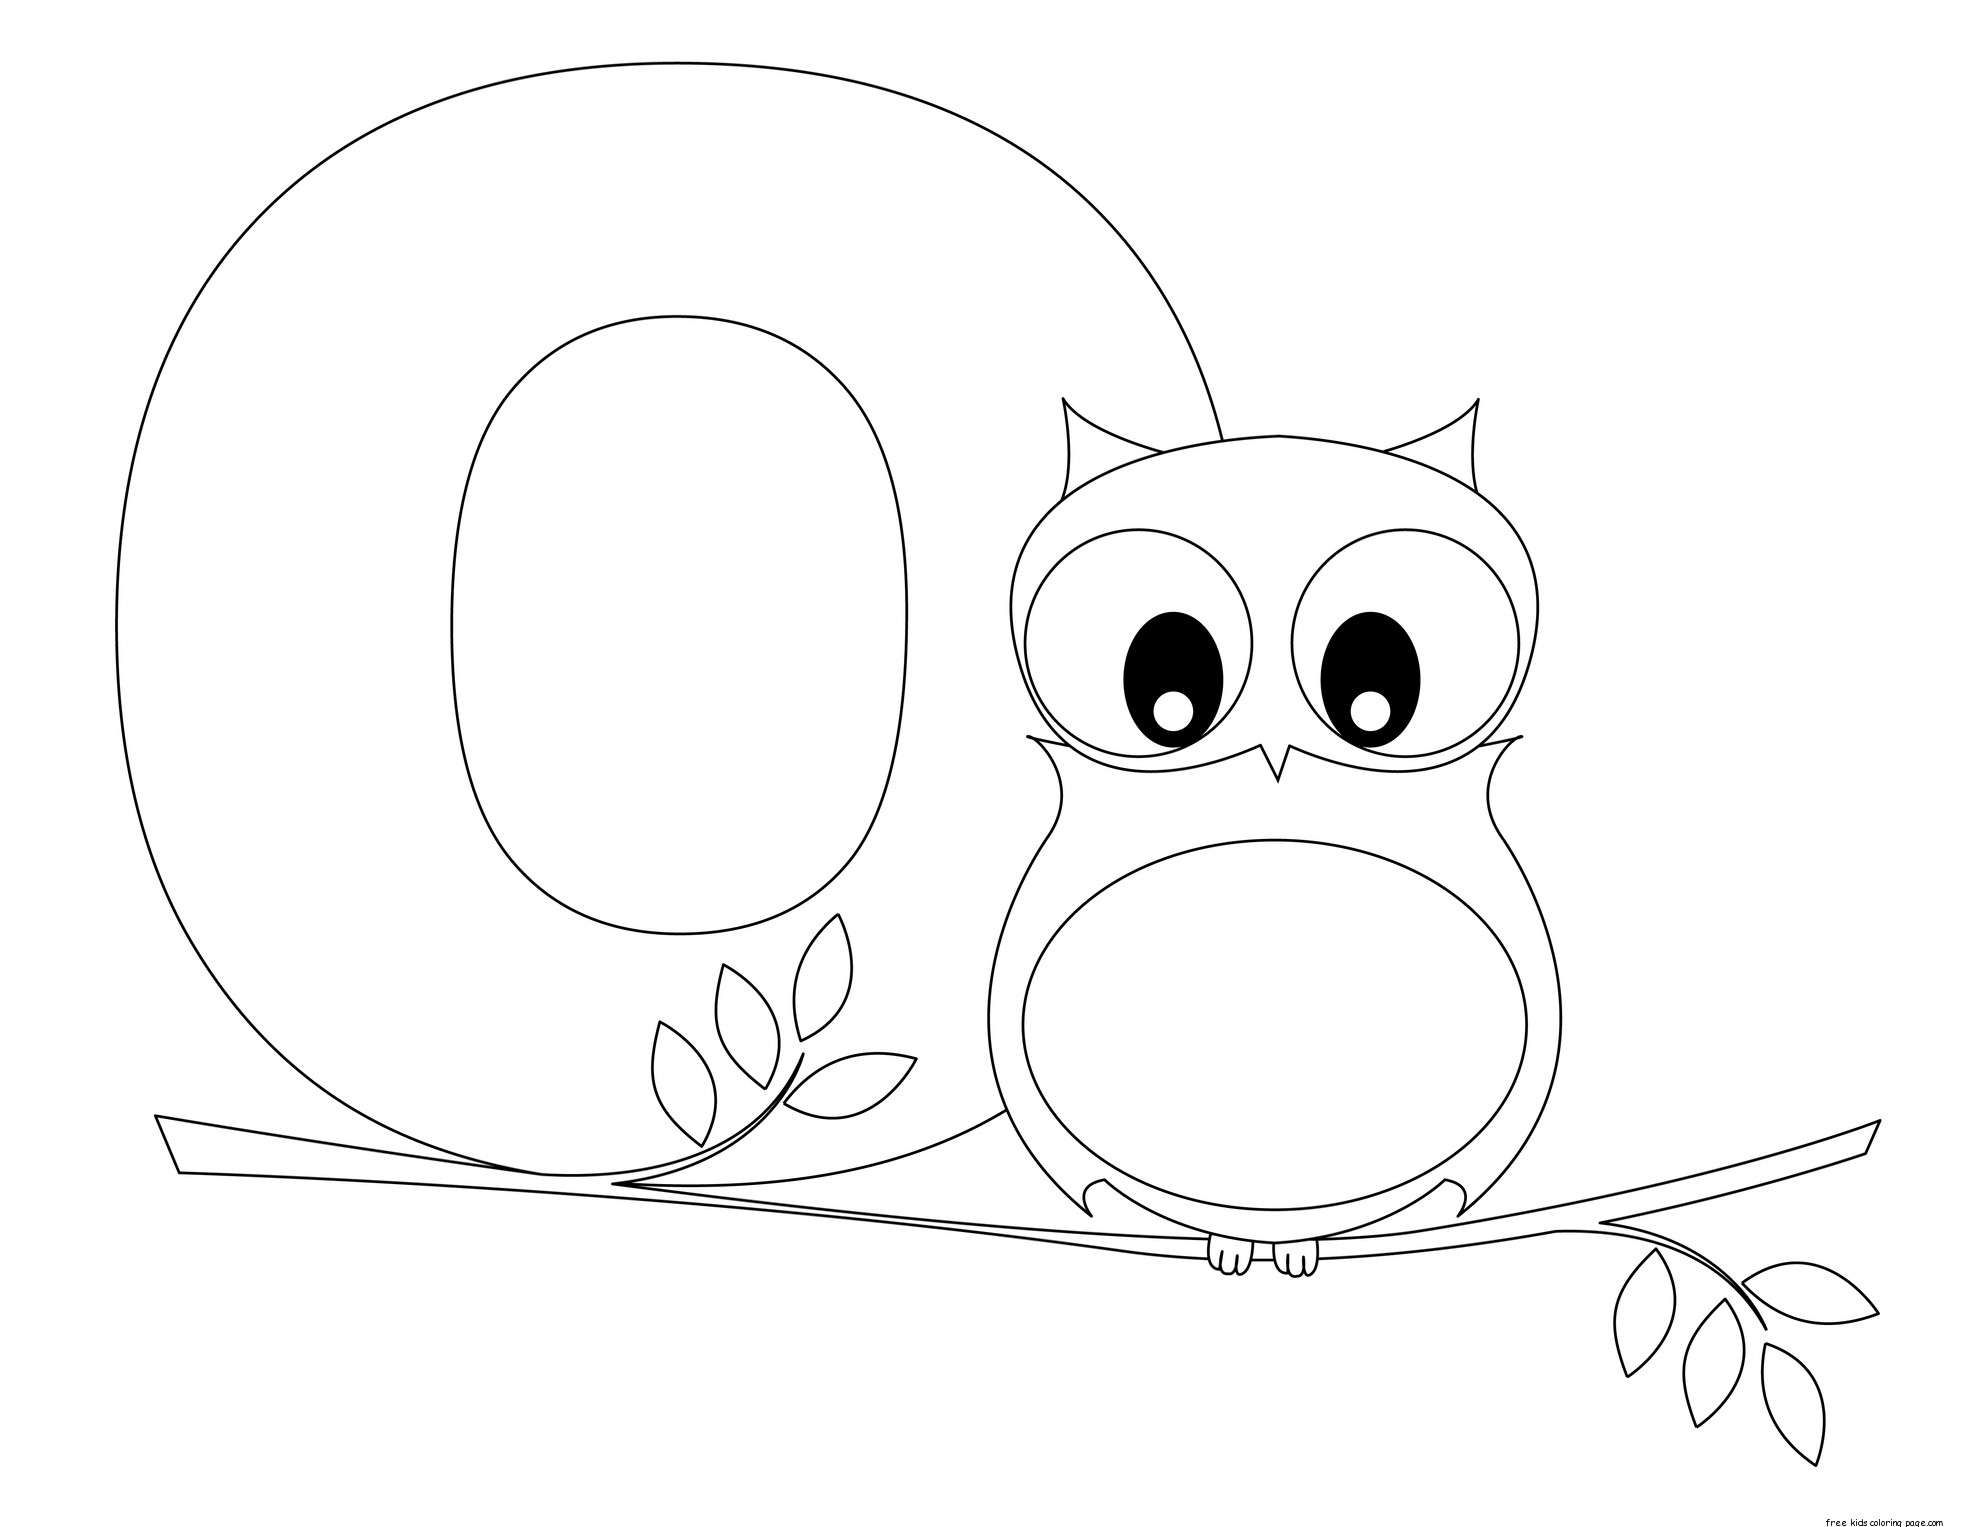 Coloring lovely ideas animal alphabet coloring pages alphab with